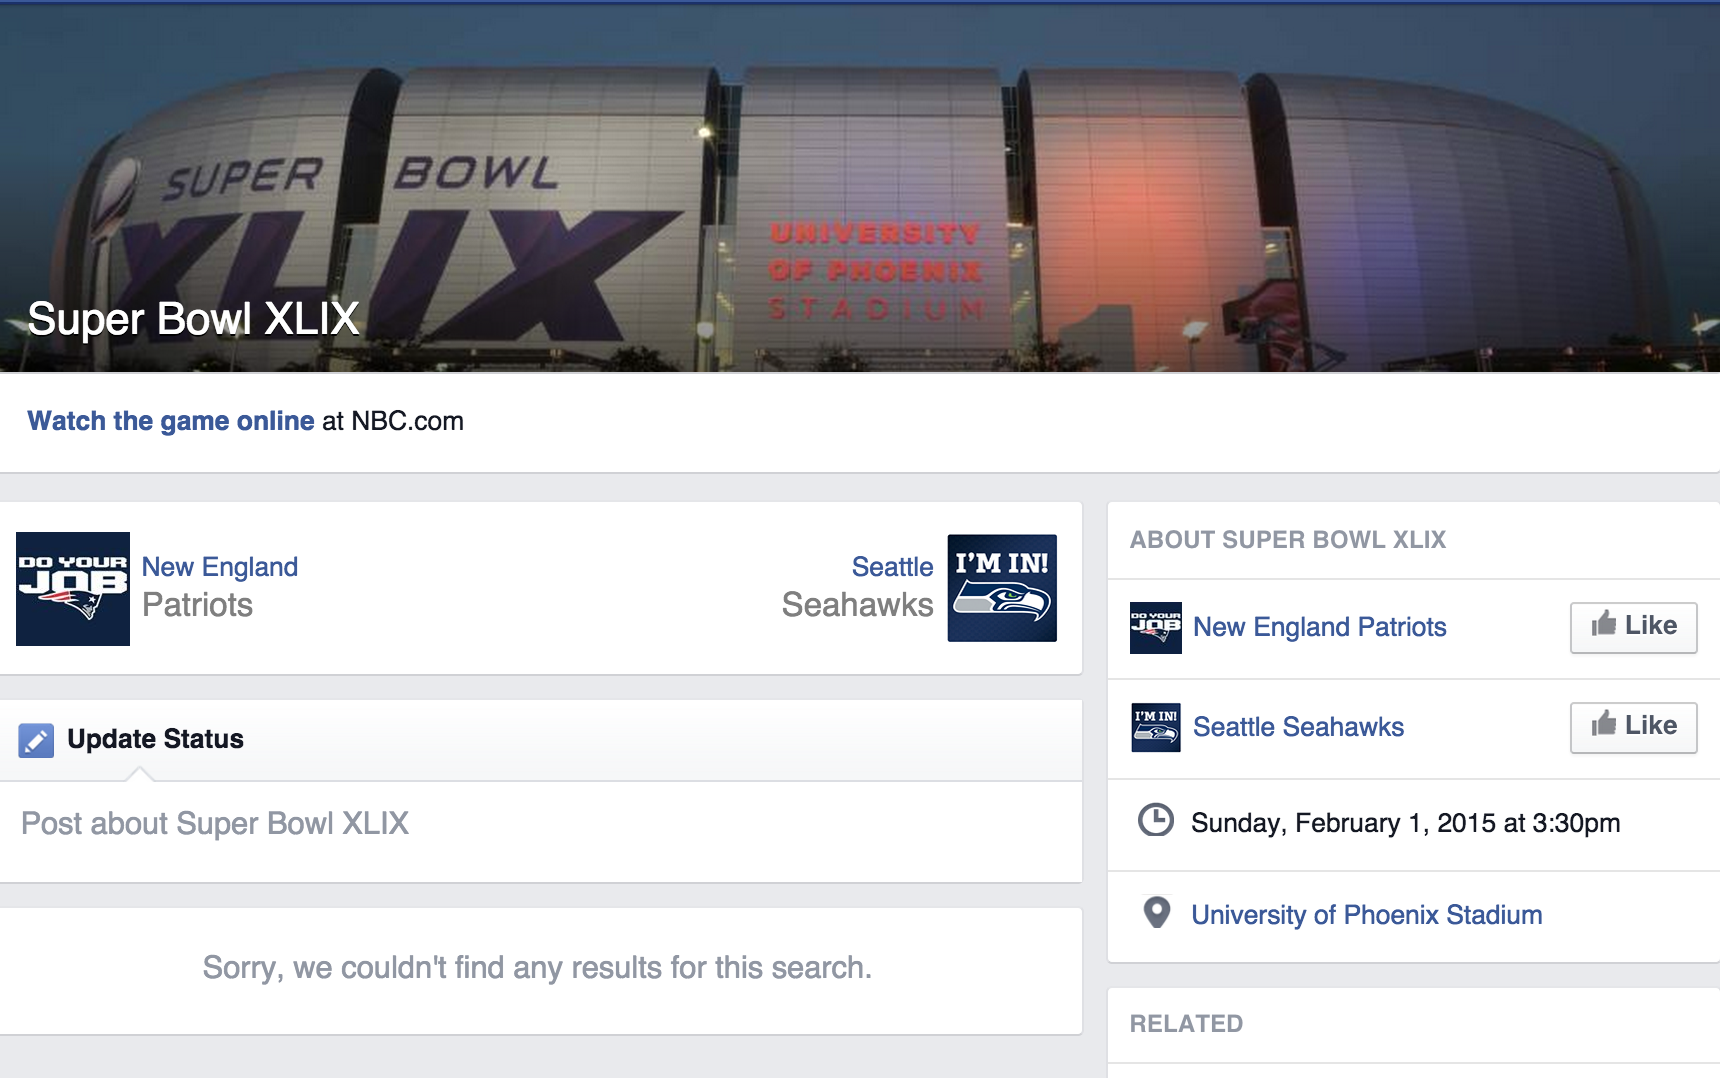 A screenshot of Facebook's Superbowl hub on Wednesday, January 28th